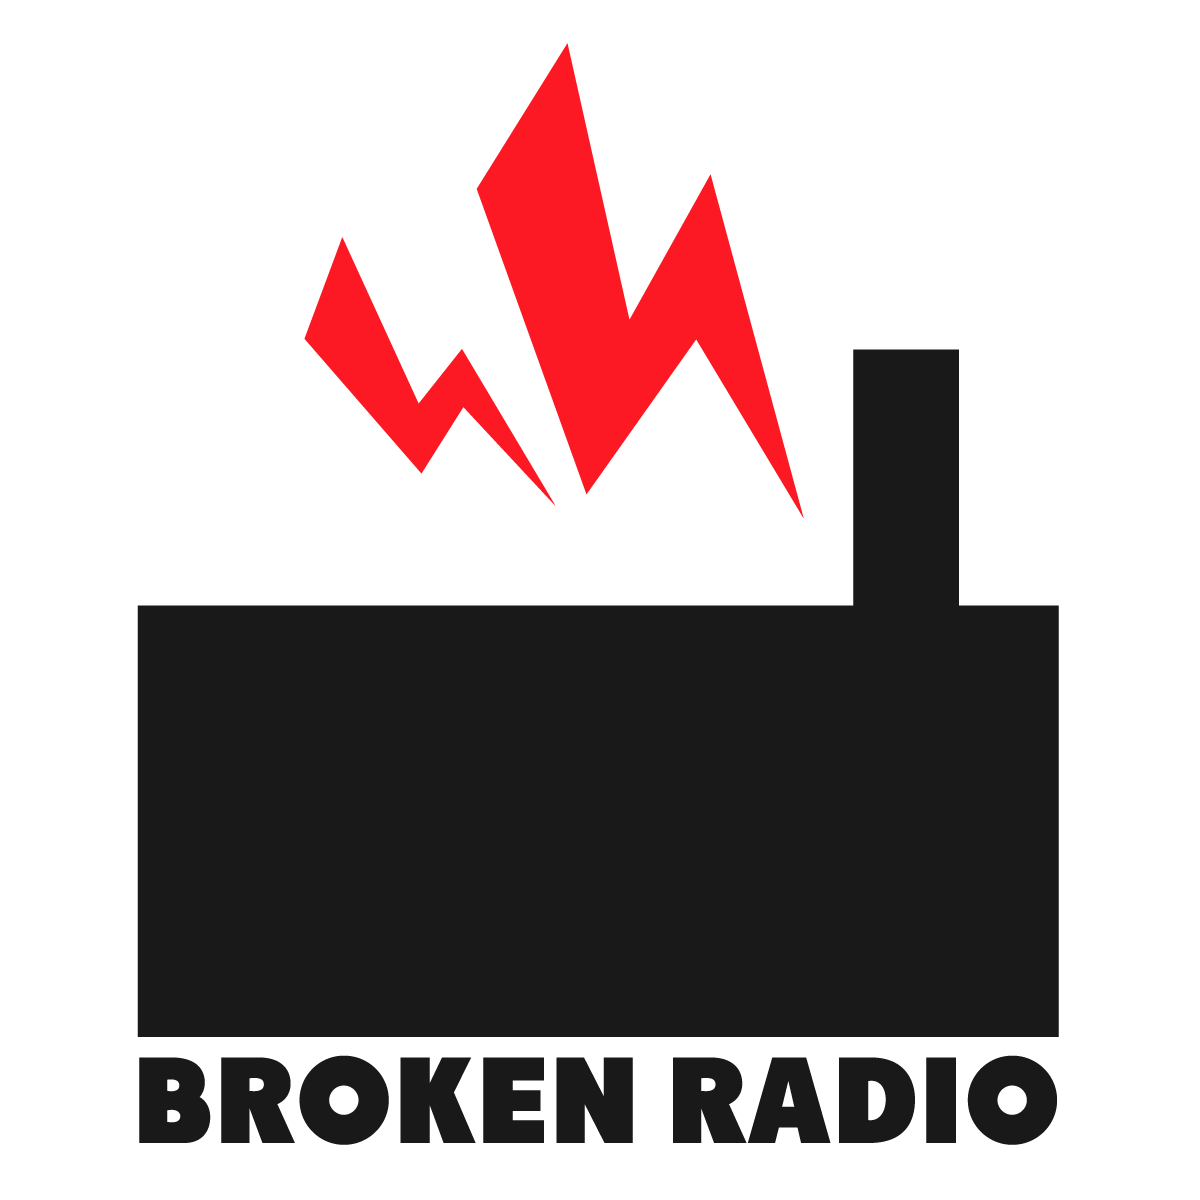 Broken Radio by Donald & Fagen